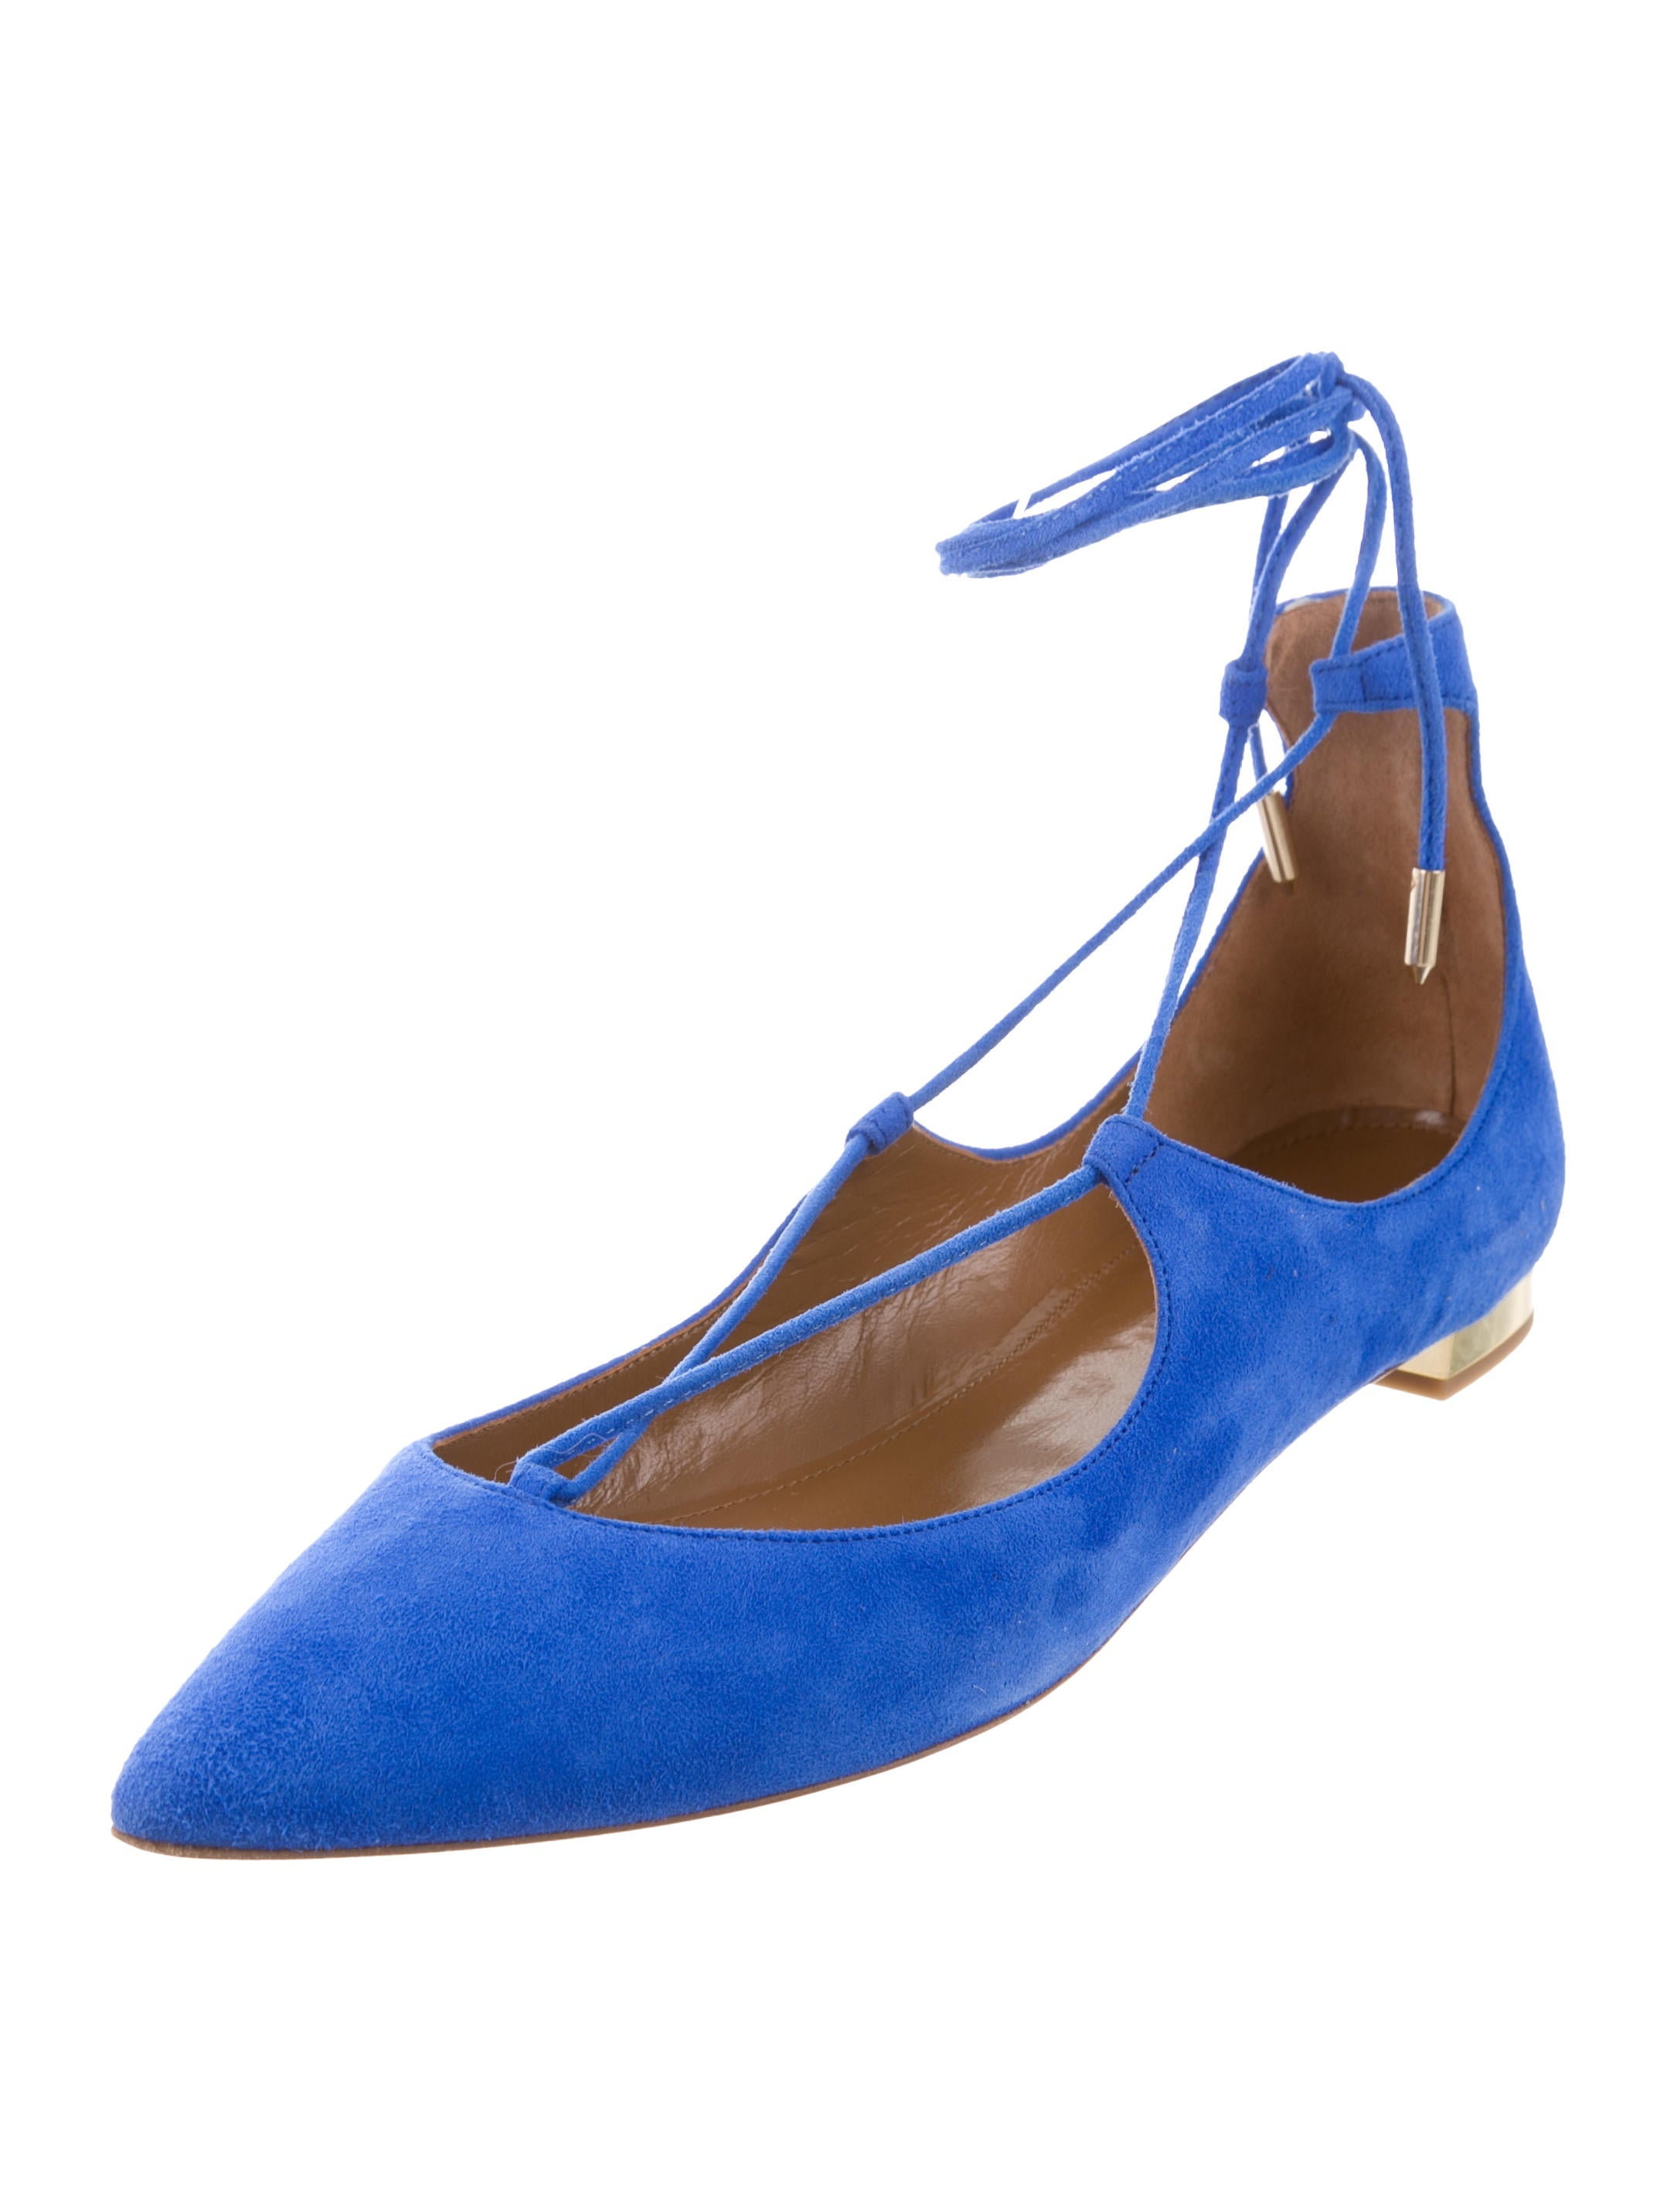 Aquatalia Christy Lace-Up Flats w/ Tags shipping discount sale cheap sale classic clearance wiki with credit card cheap online best prices cheap price jcXBnZ